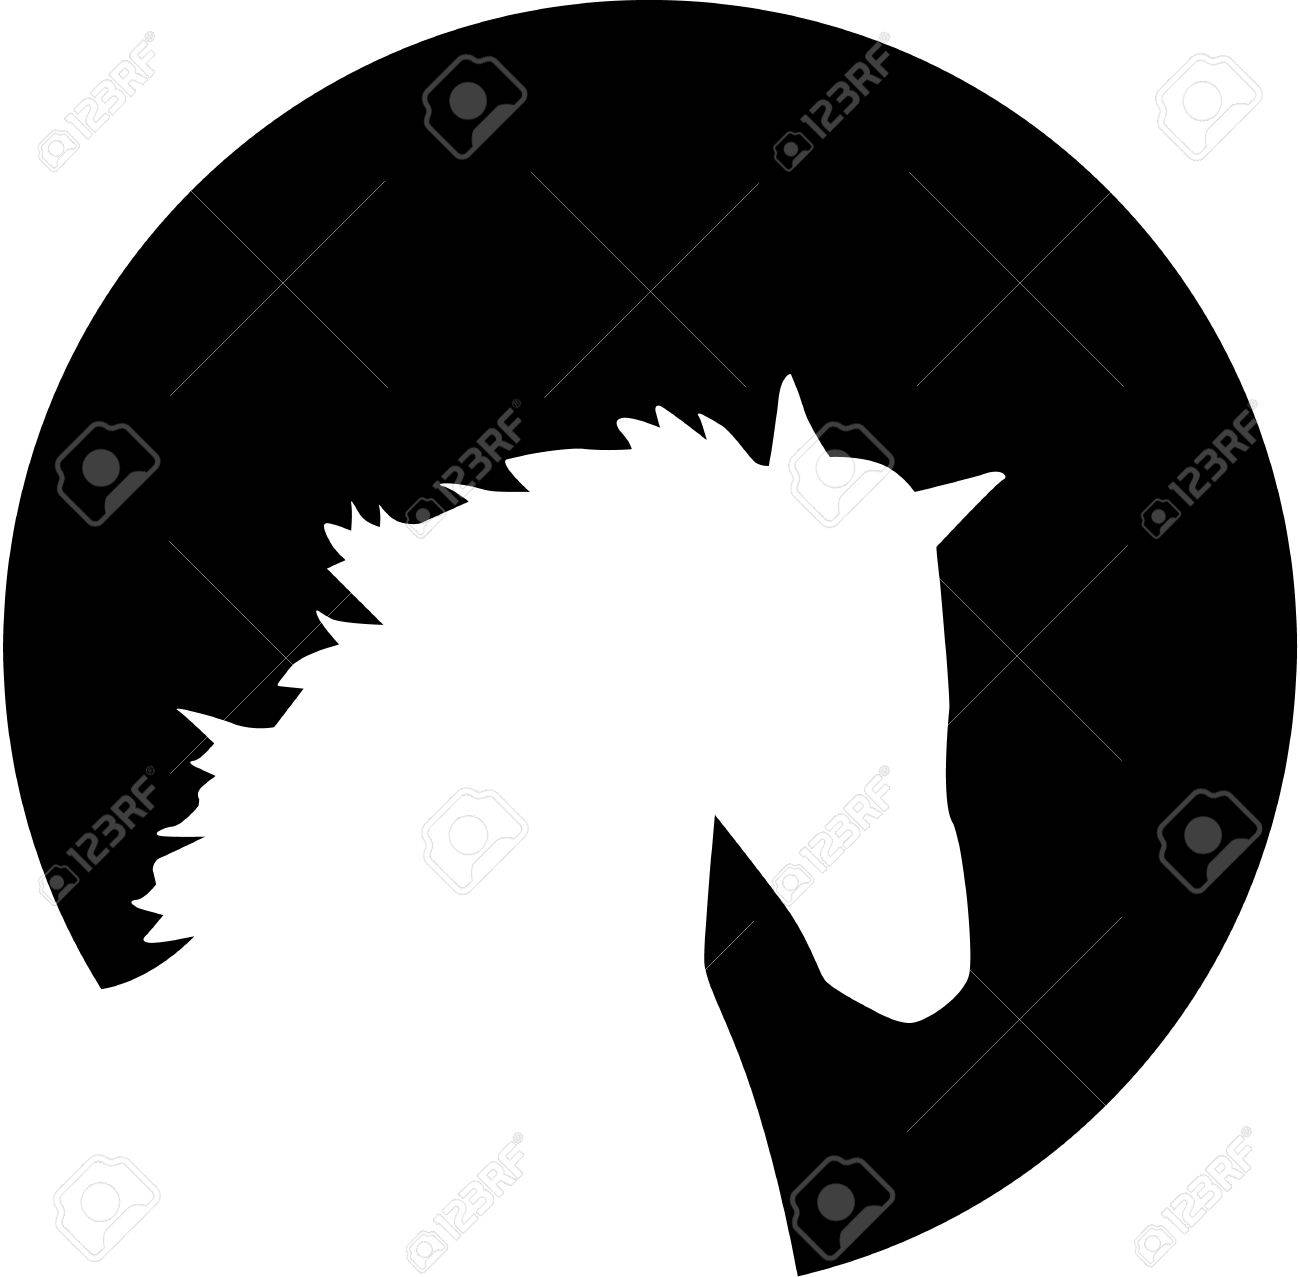 Horse Head Silhouette In Front Of The Moon Royalty Free Cliparts Vectors And Stock Illustration Image 46556928